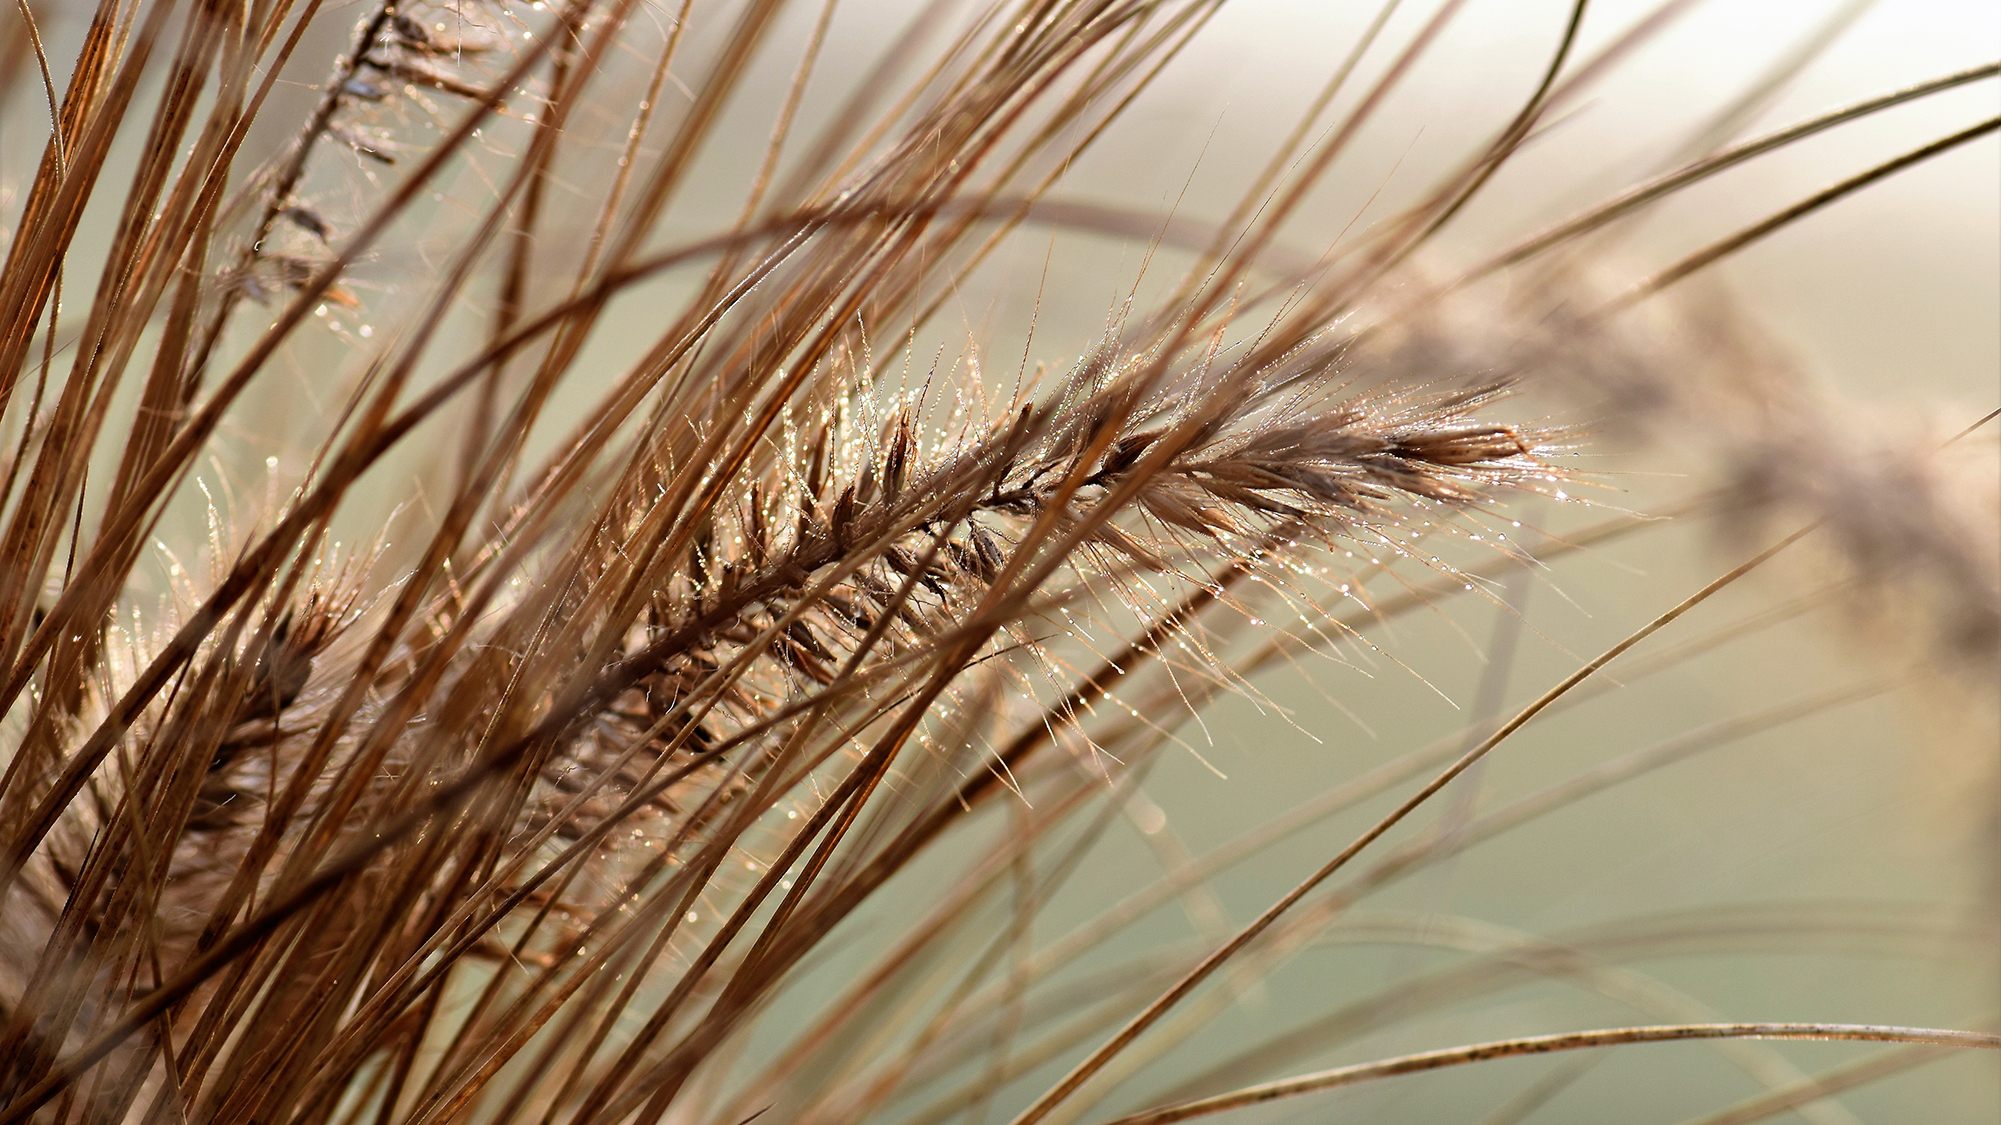 Hay Fever Season – Can Ventilation Help? It Depends